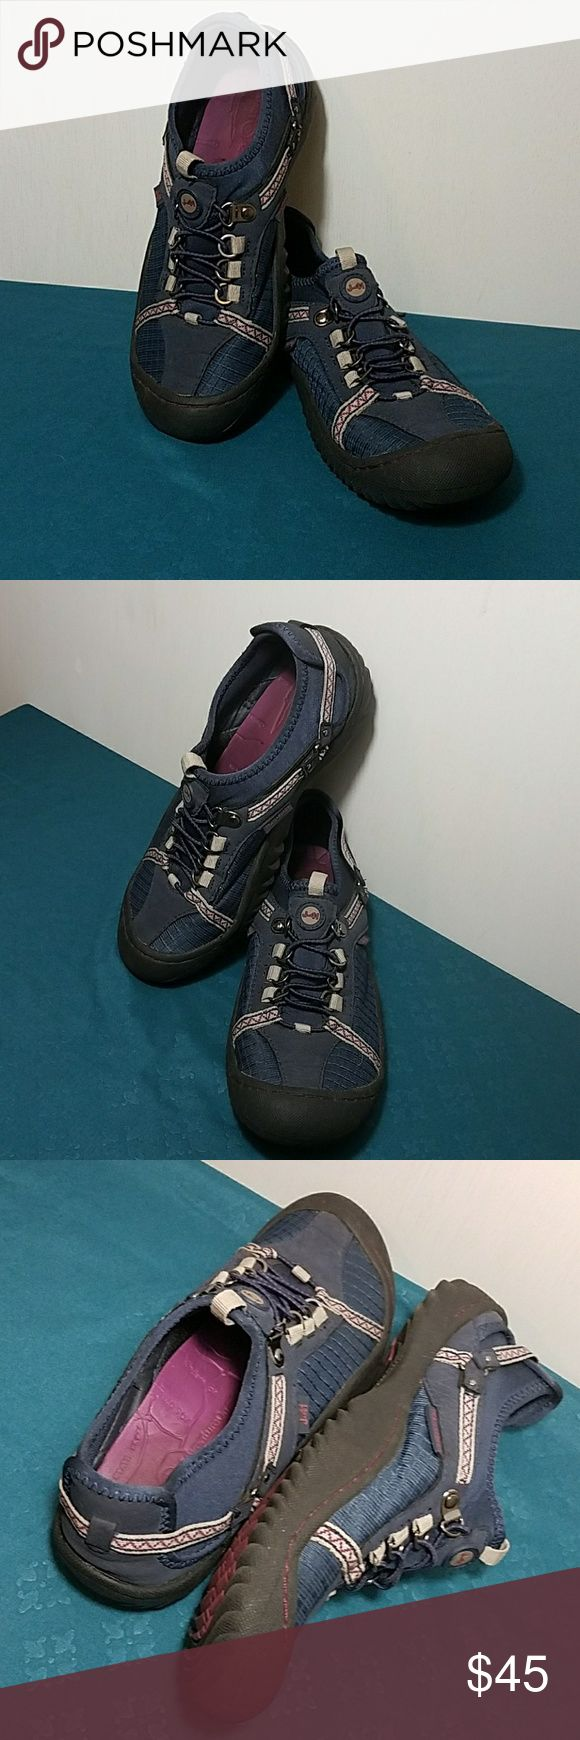 J41 JEEP Trail Ready Shoes Sz 8 Excellent Condition,  Appear New, J41 Jeep engineered traction Trail Ready shoes, navy and plum J-41 Shoes